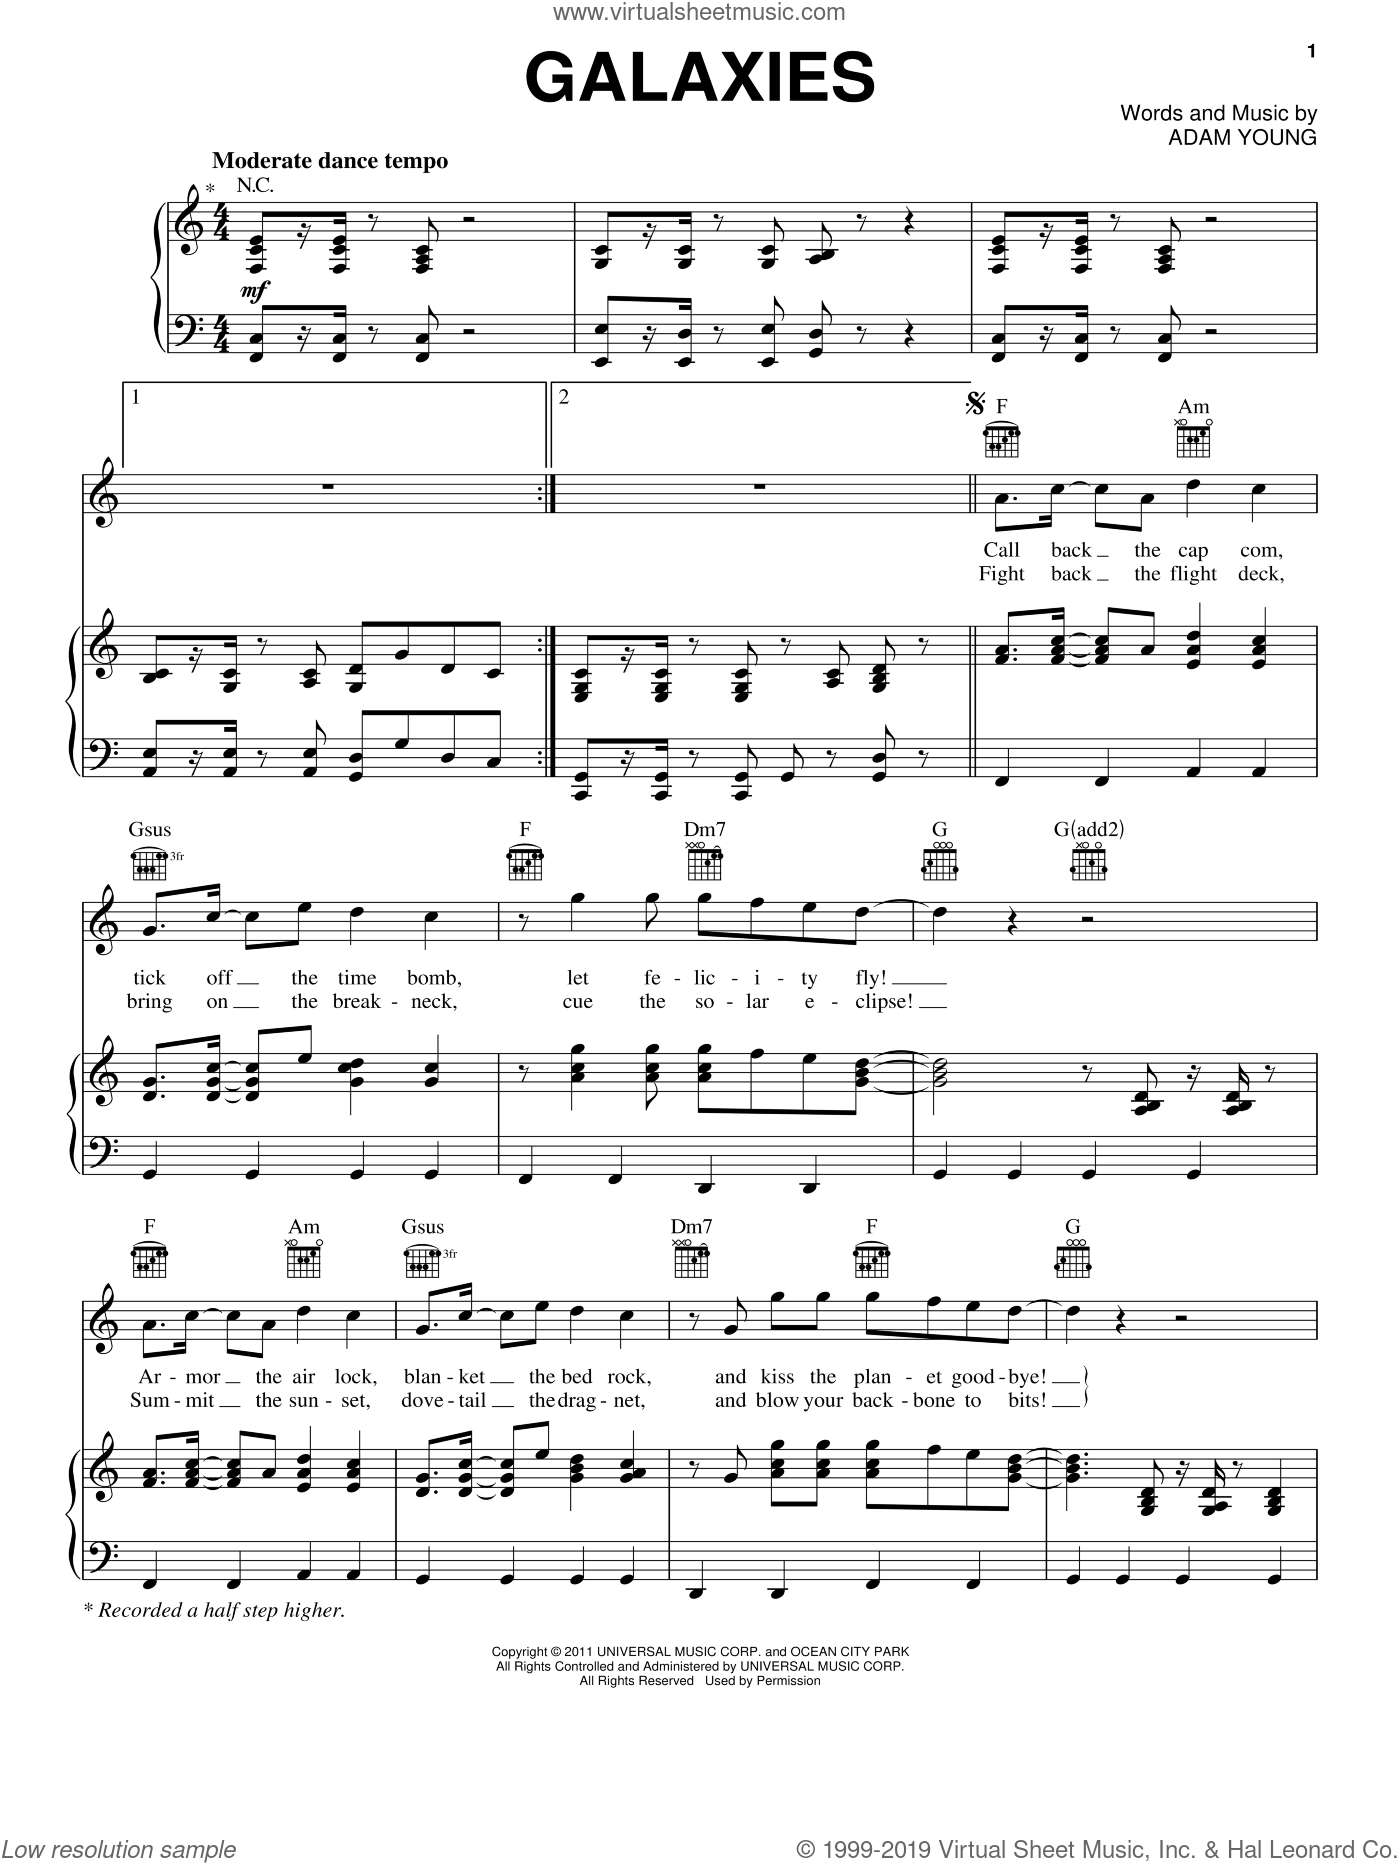 Galaxies sheet music for voice, piano or guitar by Owl City and Adam Young, intermediate skill level